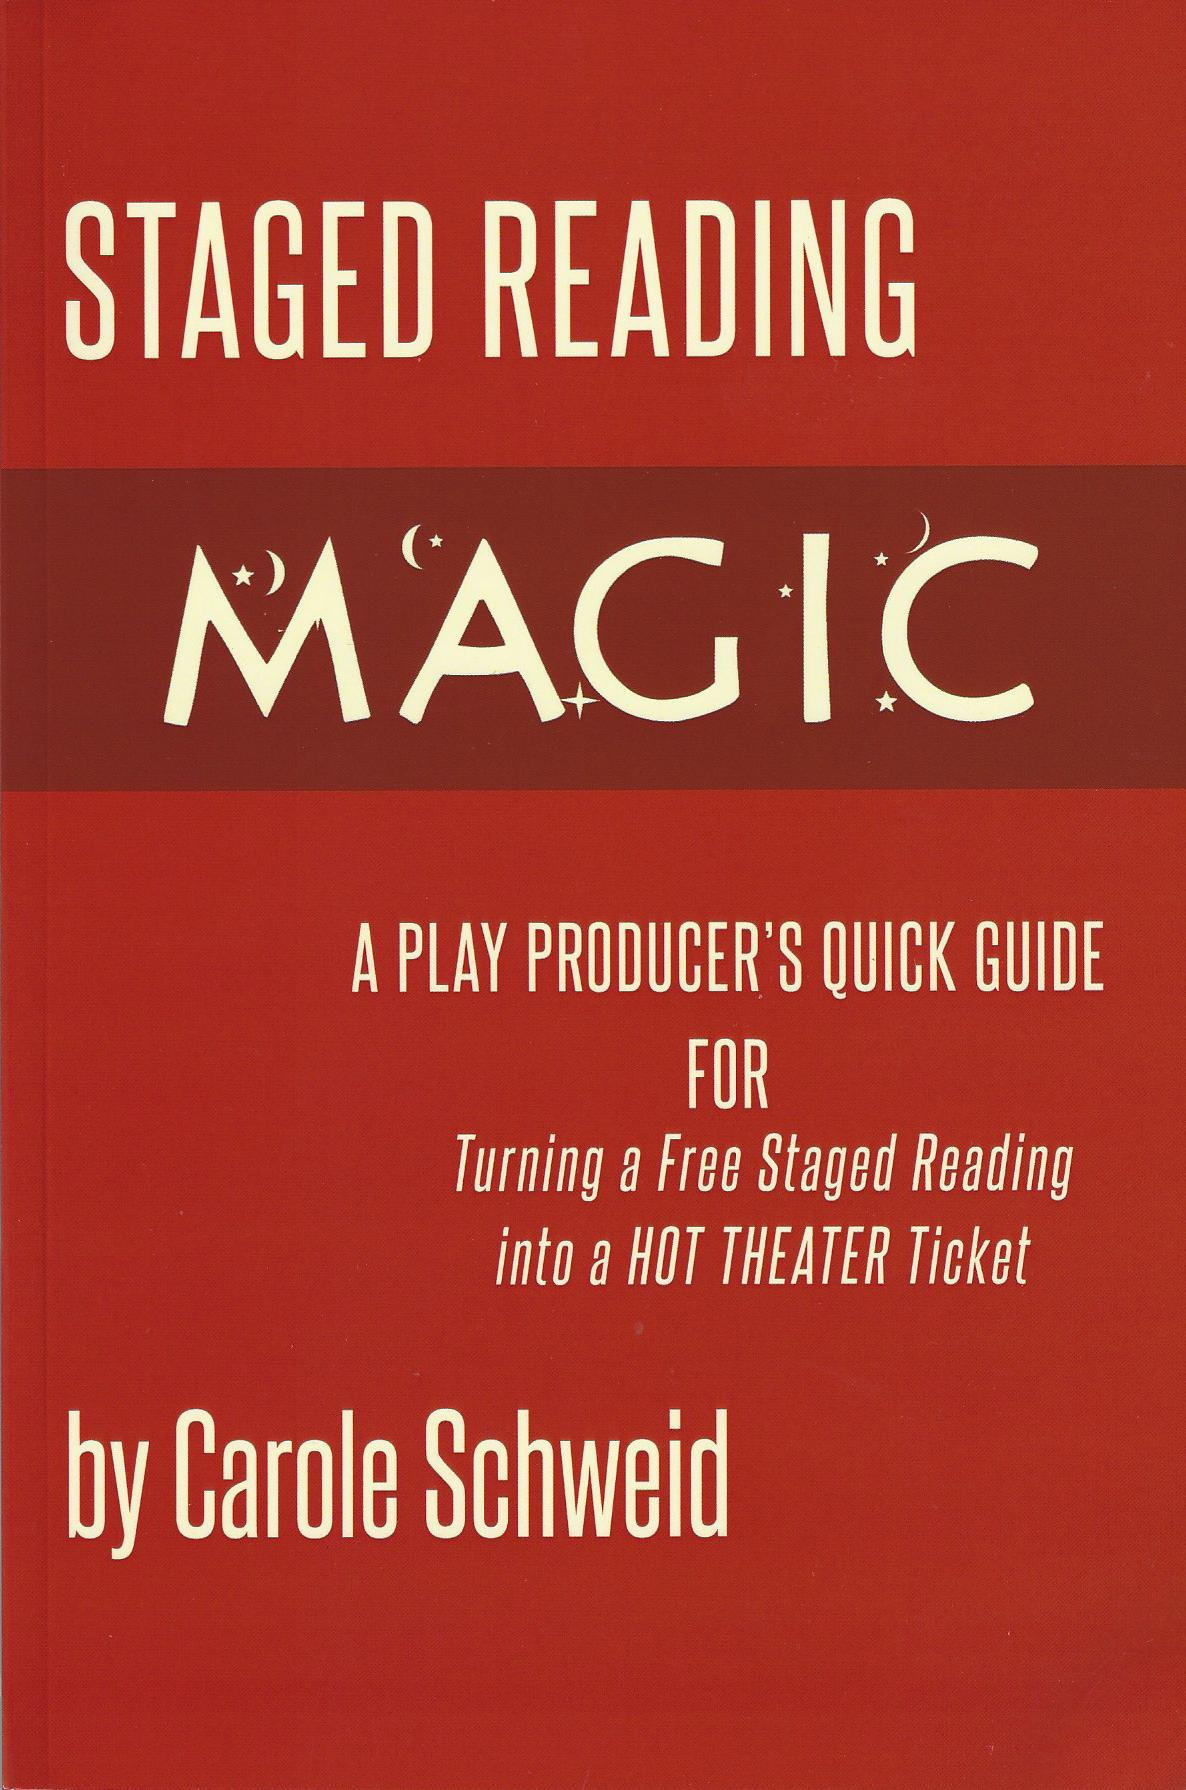 Staged Reading Magic